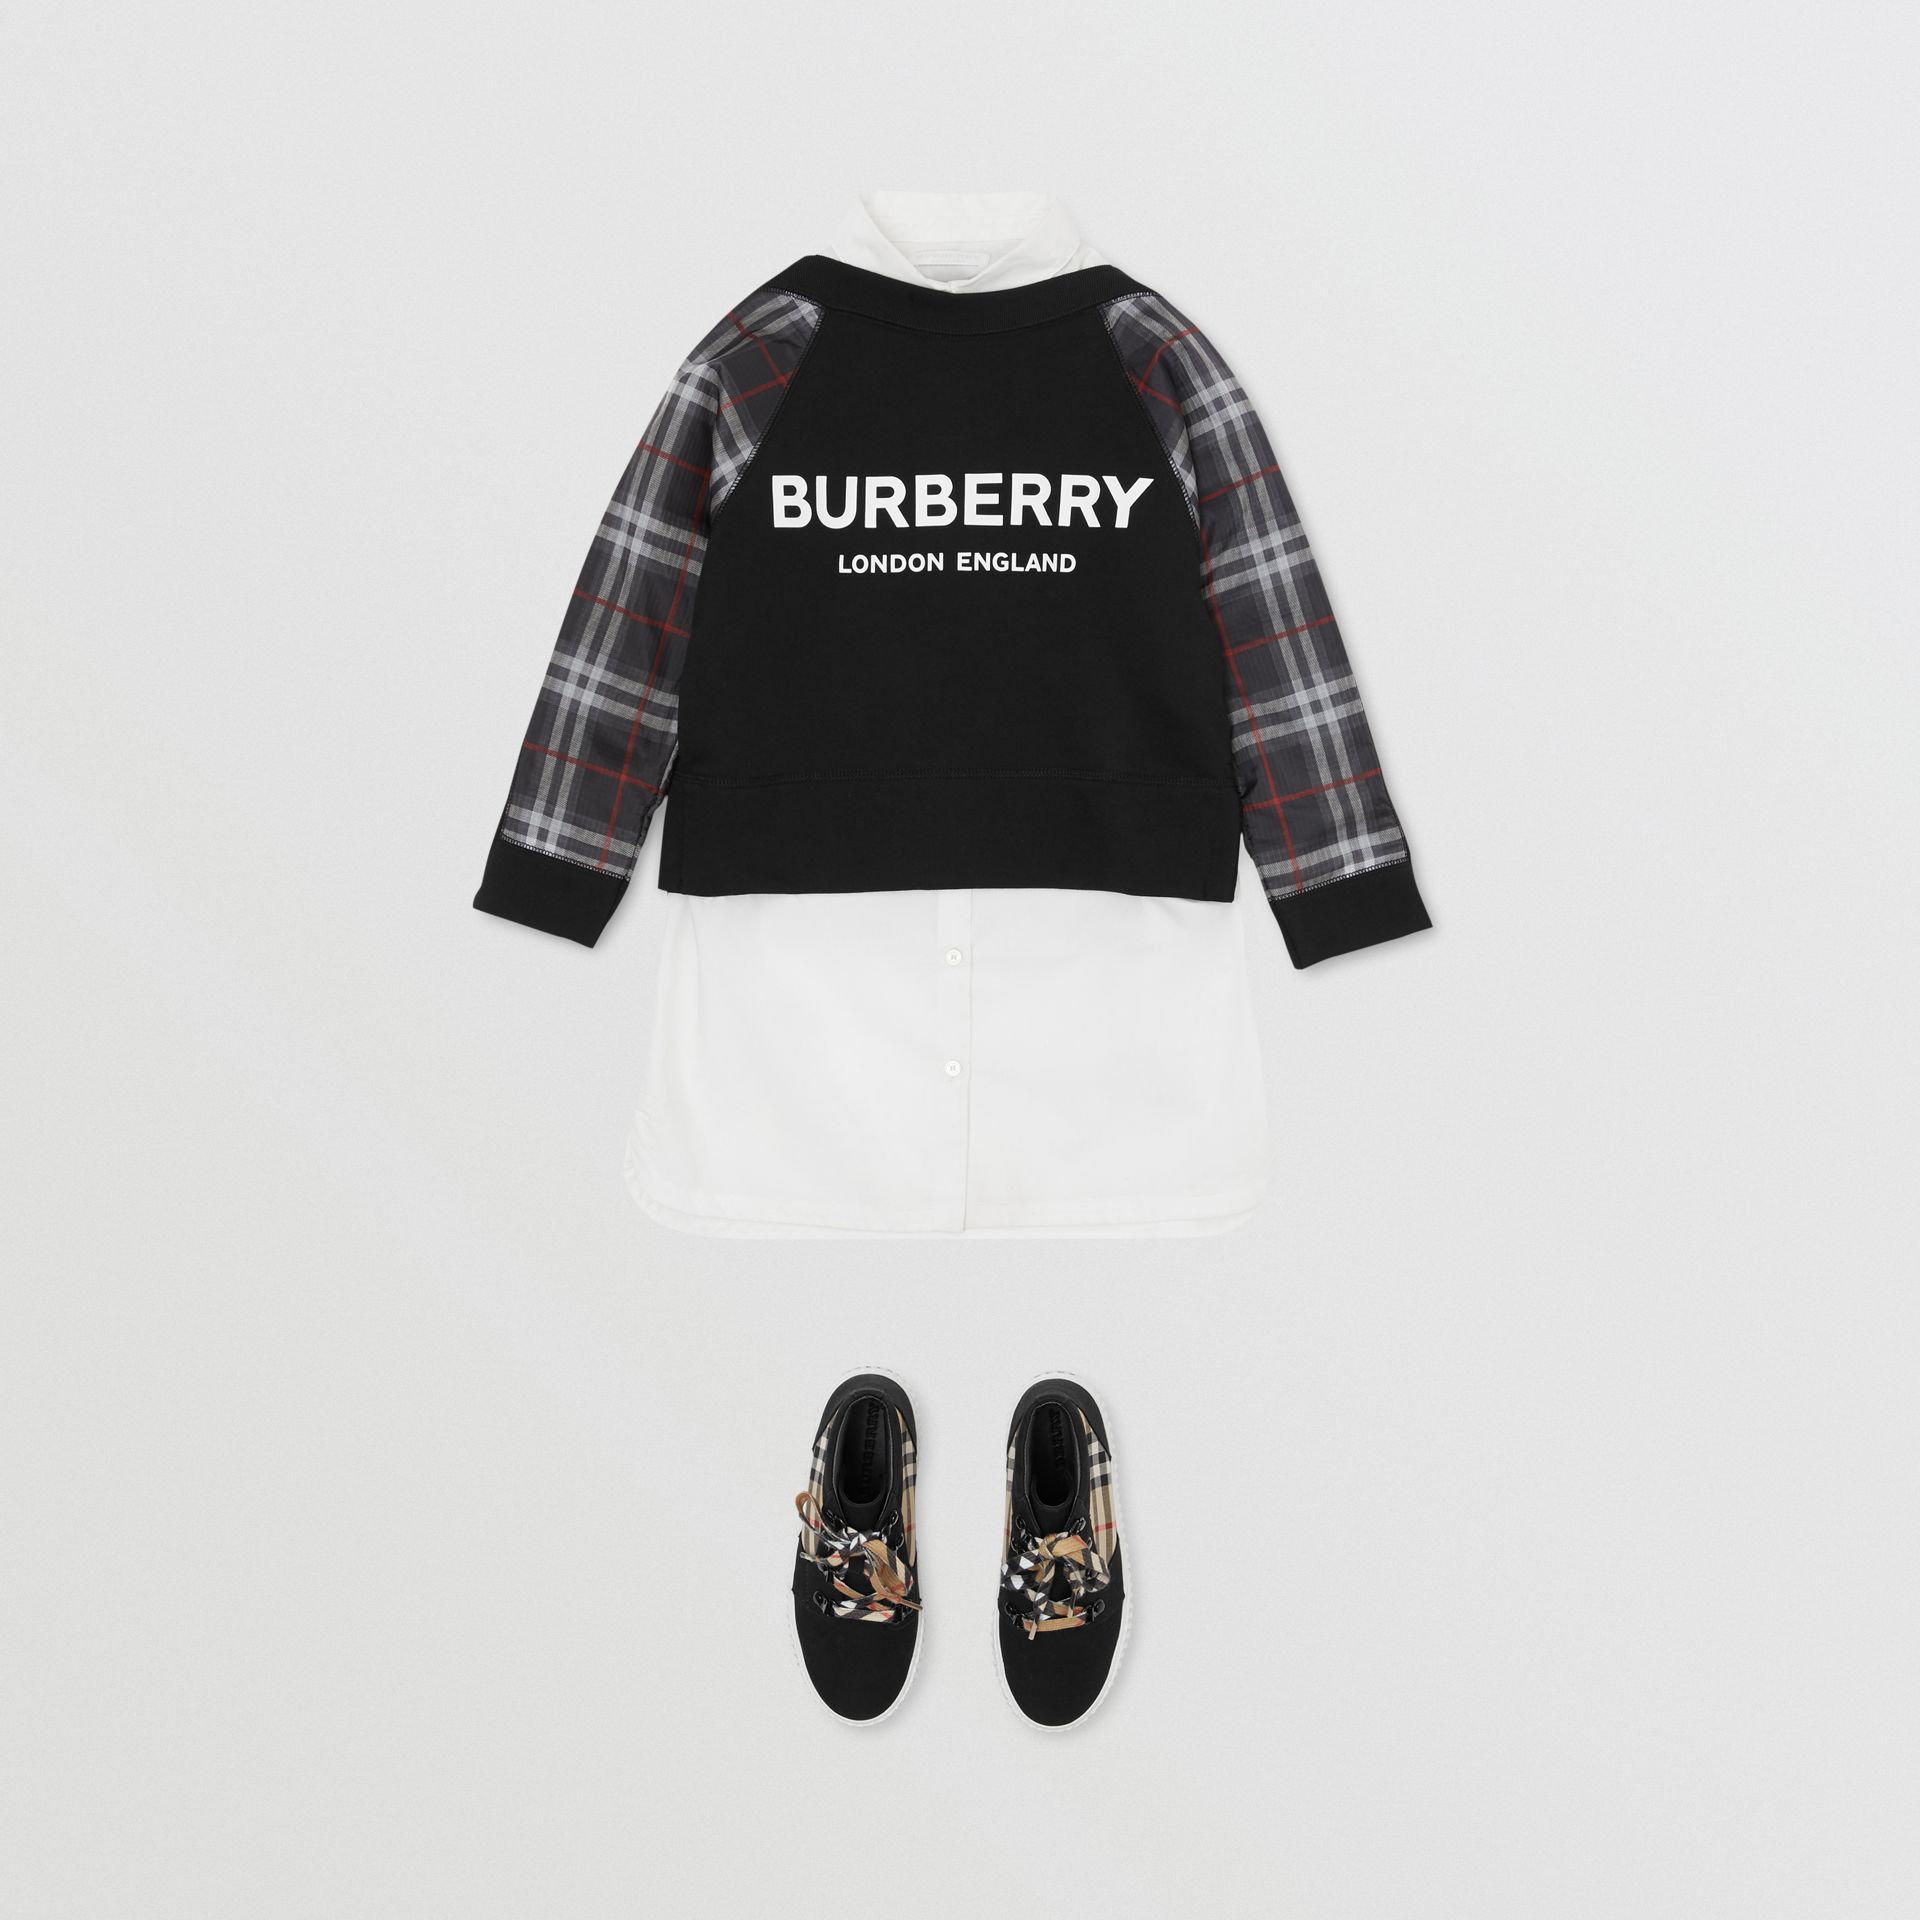 Sweat-shirt en coton avec logo et Vintage check (Noir) | Burberry - photo de la galerie 2